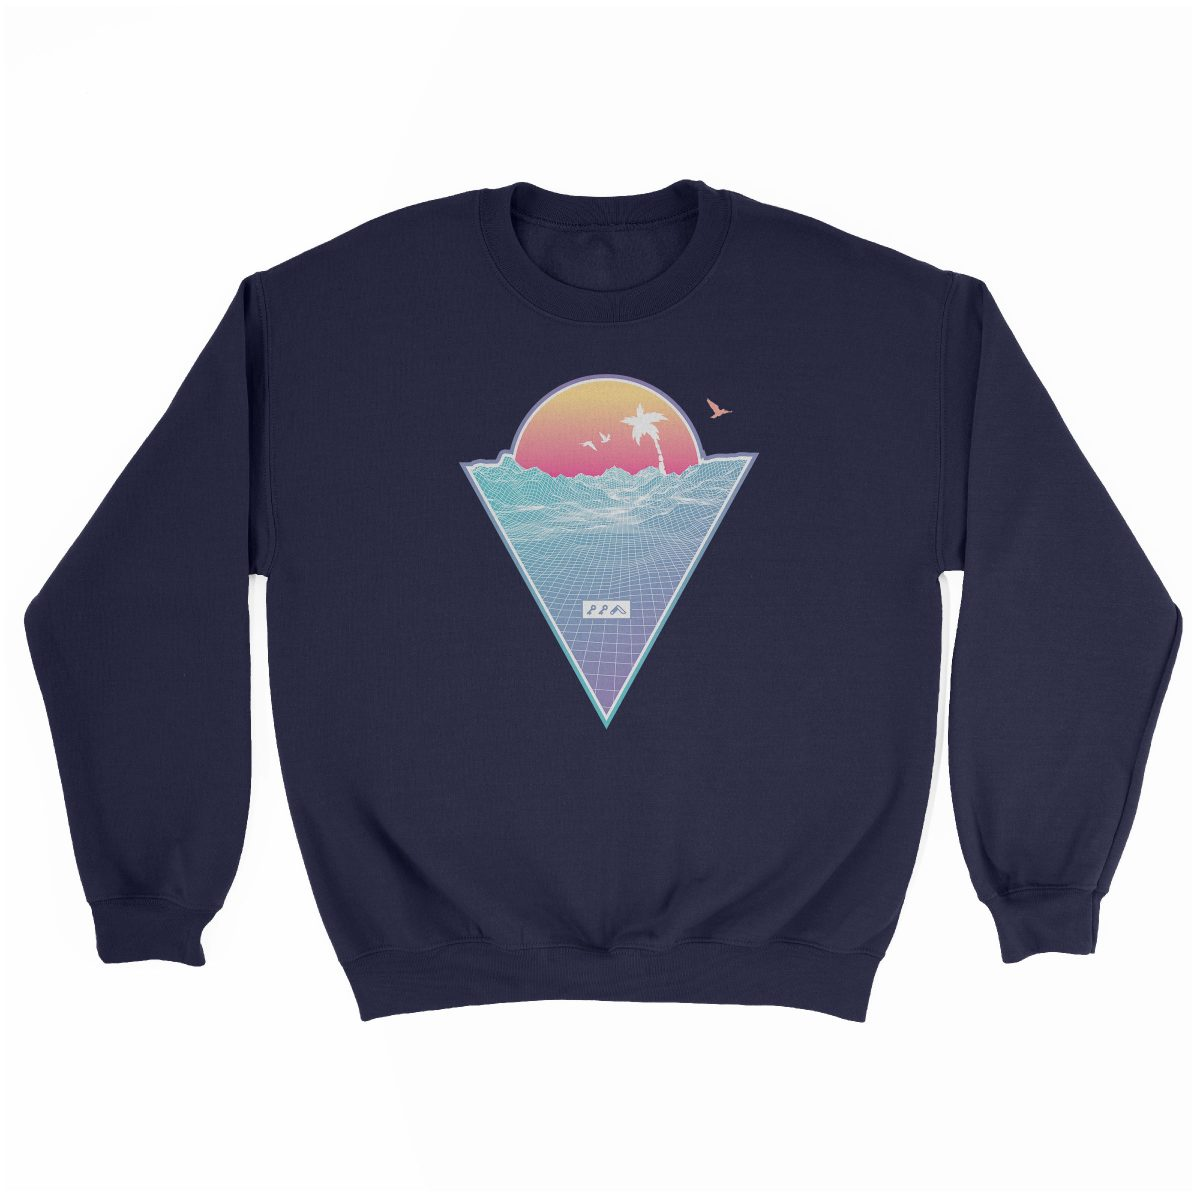 """OFF THE GRID"" cali vibes retro 80s design sweatshirt navy at kikicutt.com"